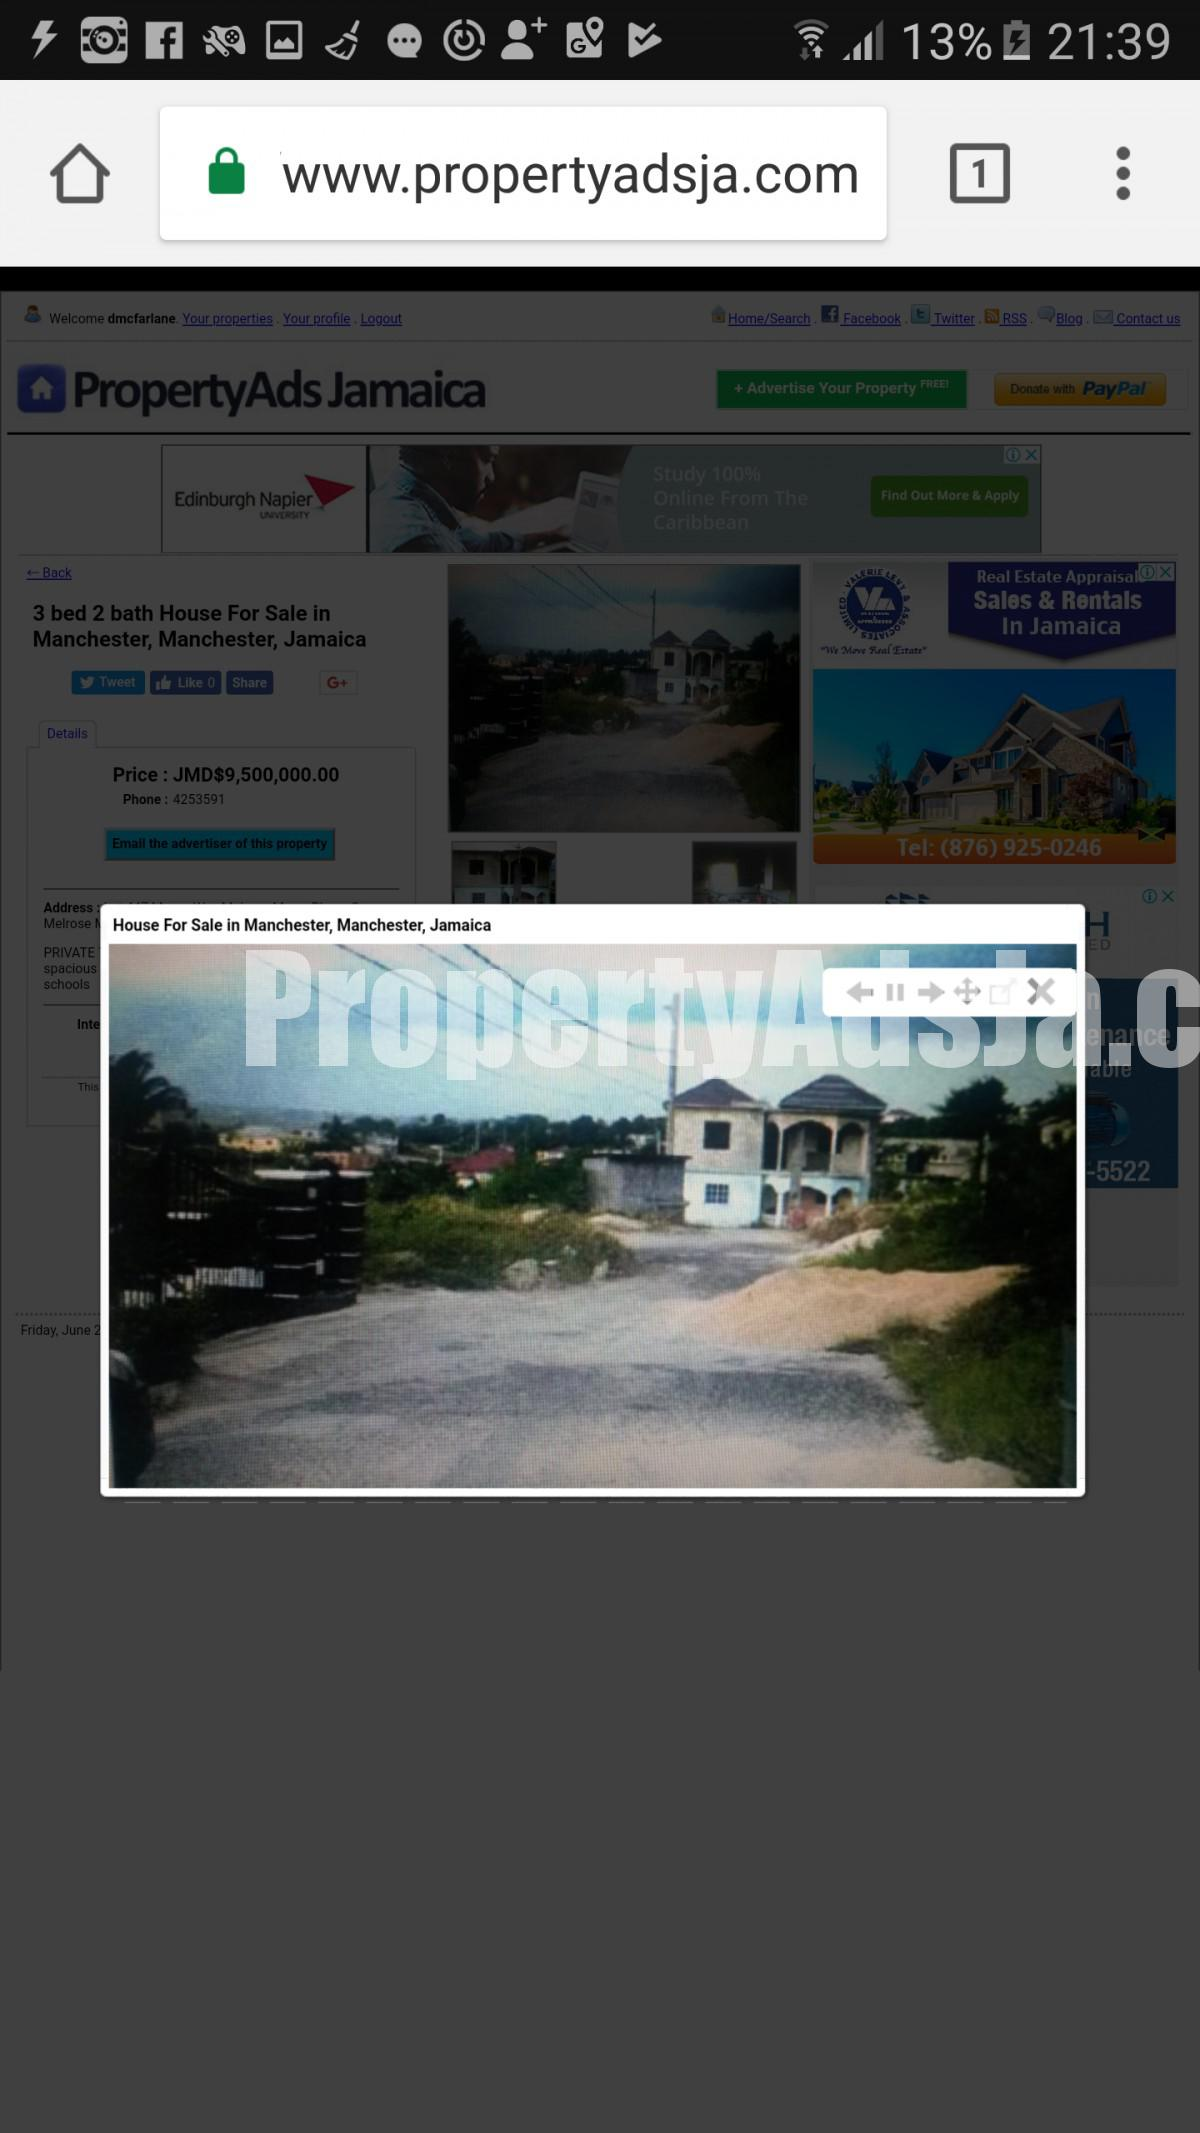 where to advertise house for sale